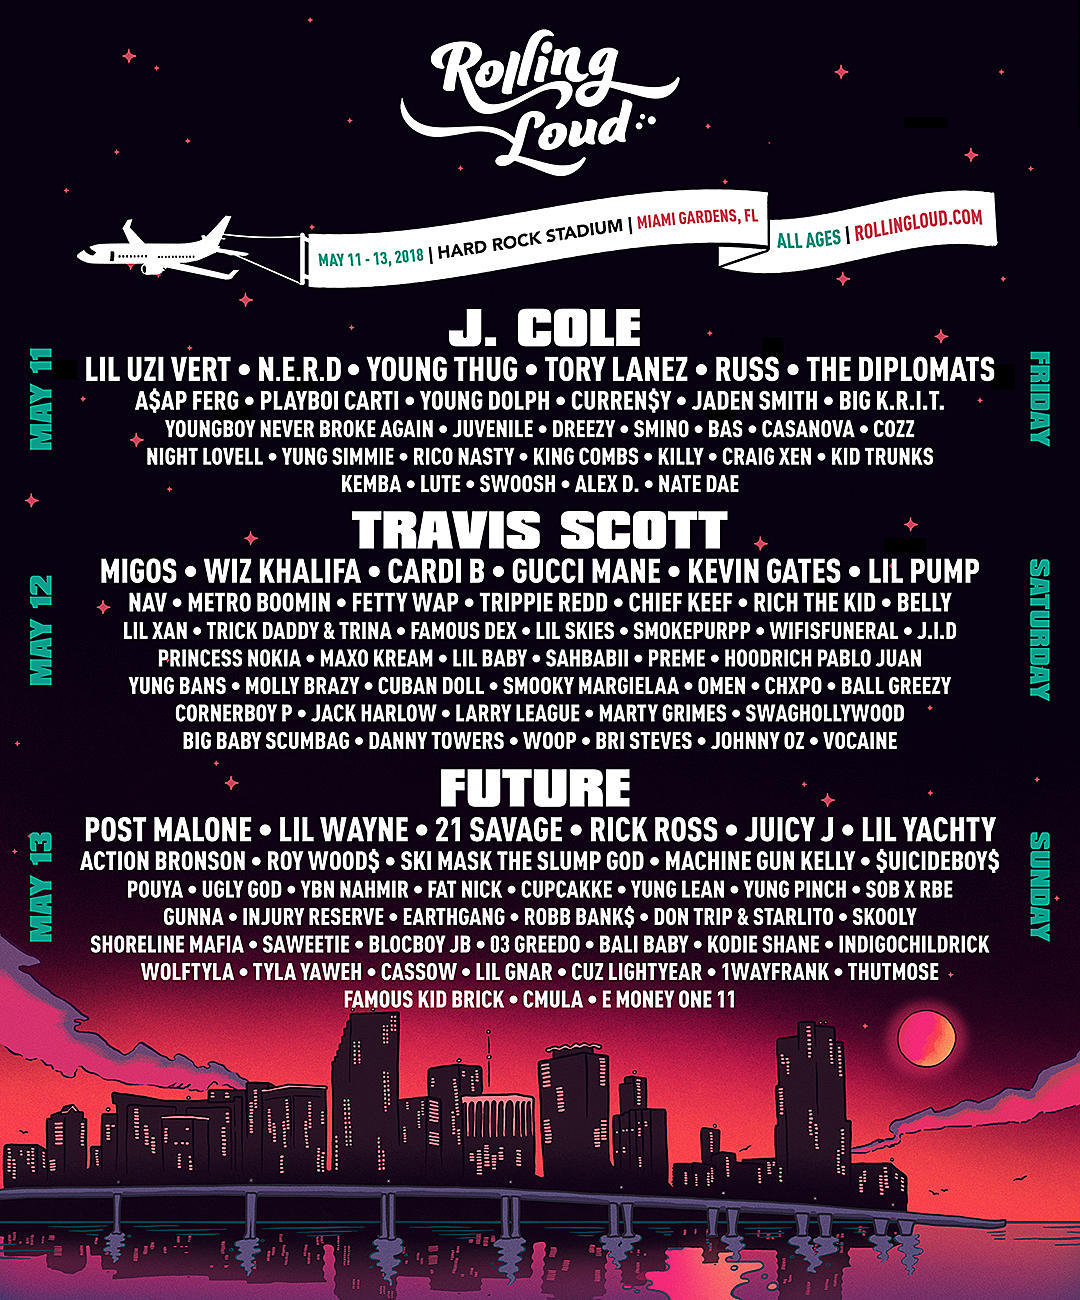 Rolling Loud 2018 Lineup Featuring J Cole Tr Rb Sagha Ultimate Oil Samo